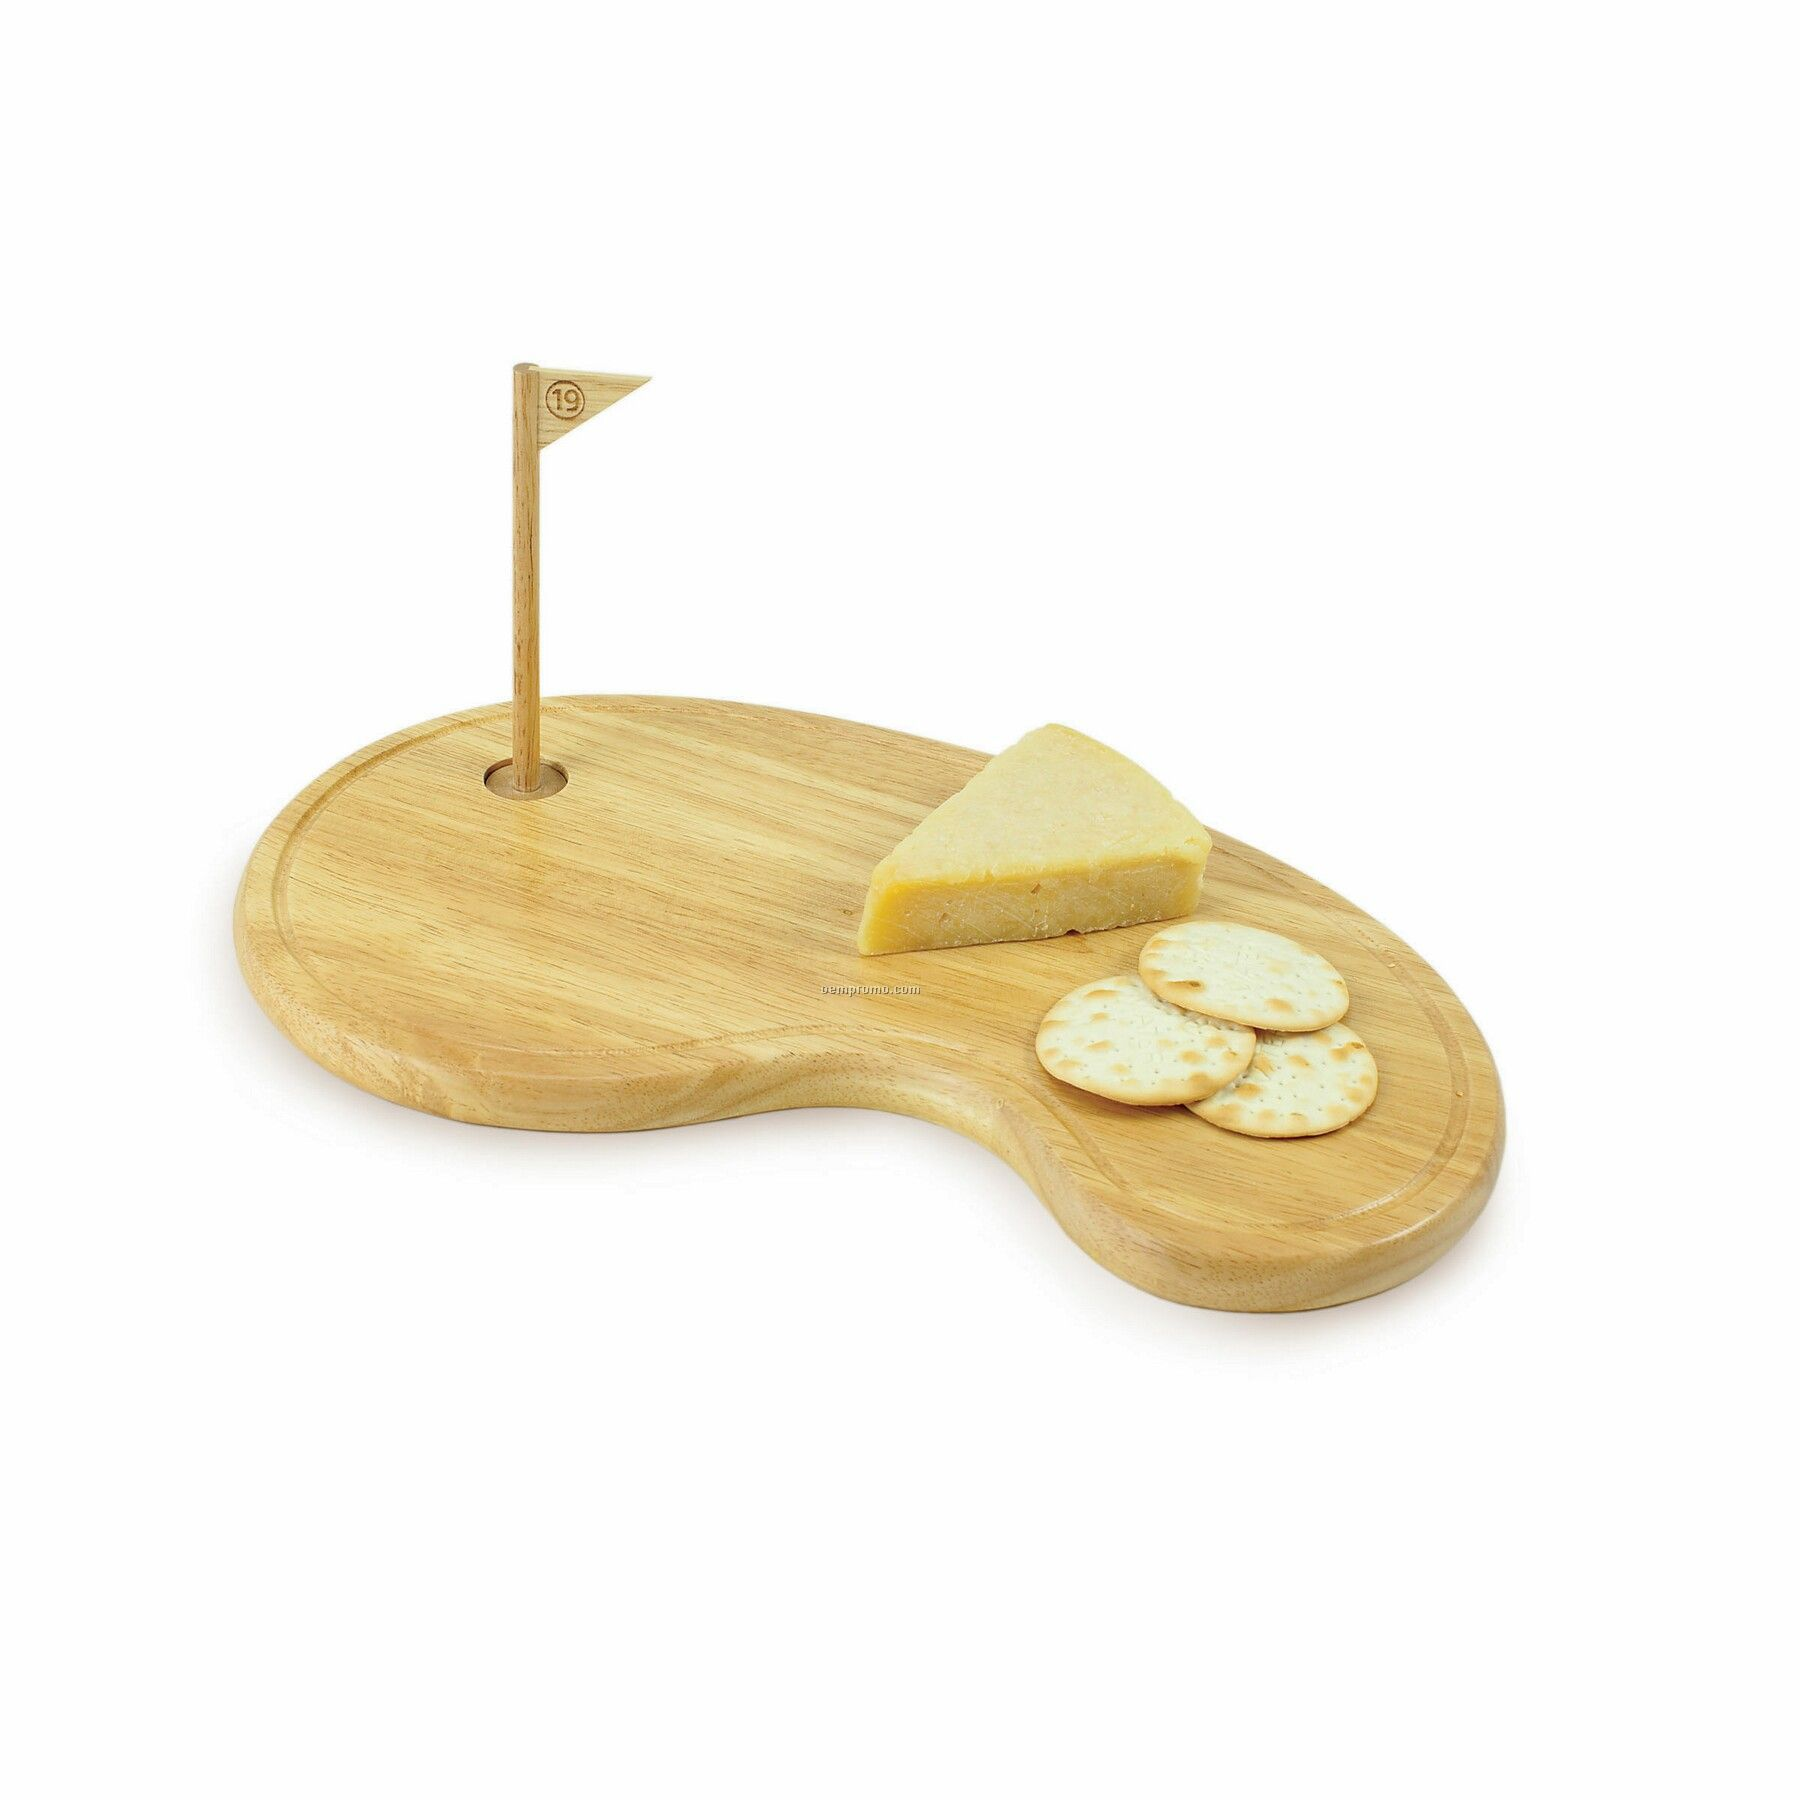 19th Hole Wood Cutting Board / Serving Tray (Putting Green Shaped)